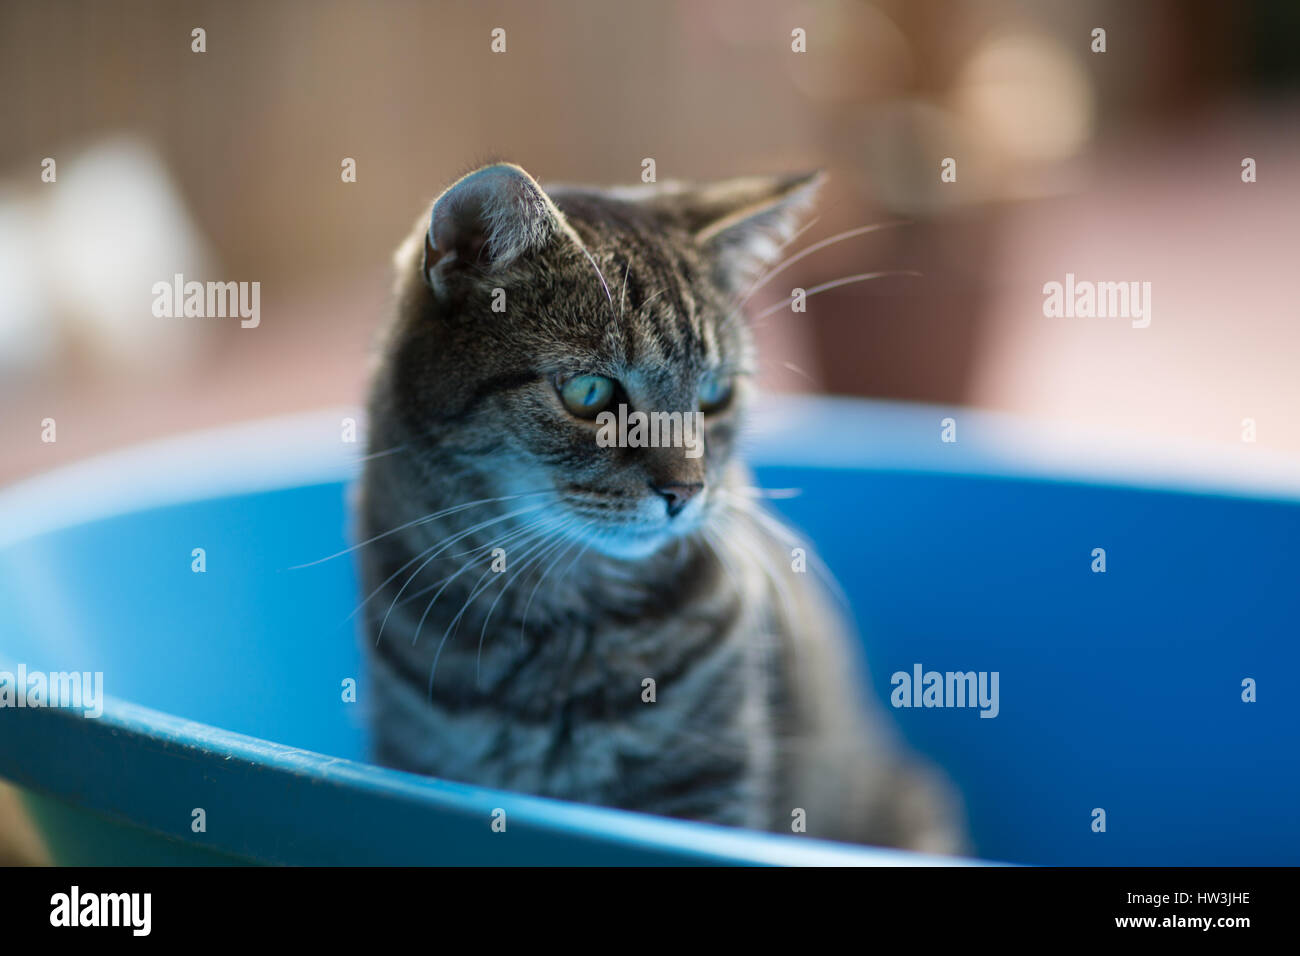 House cat in bath tube - Stock Image